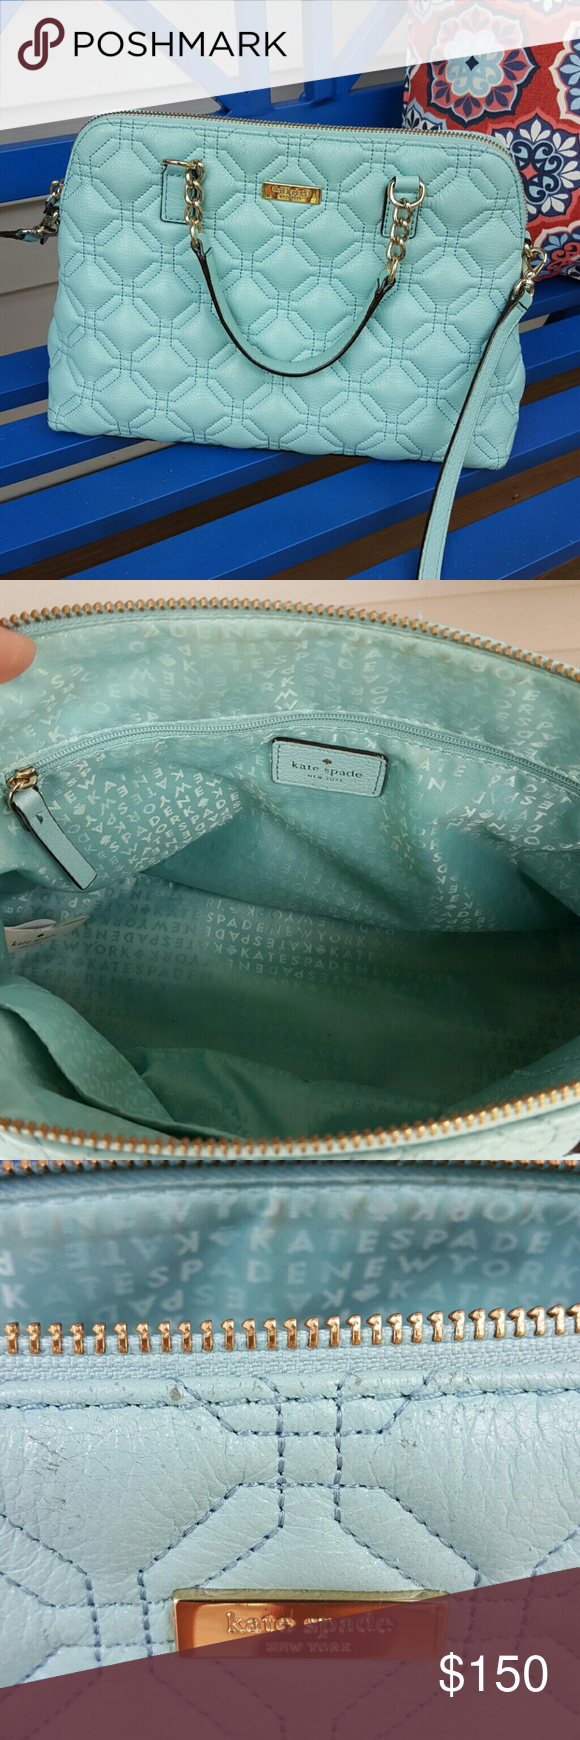 Make Offer Beautiful Kate Spade Bag Euc Closure Zip And Chains Katespade Small Rachelle Astor Court Navy Authentic Style Color Hydrangea Blue